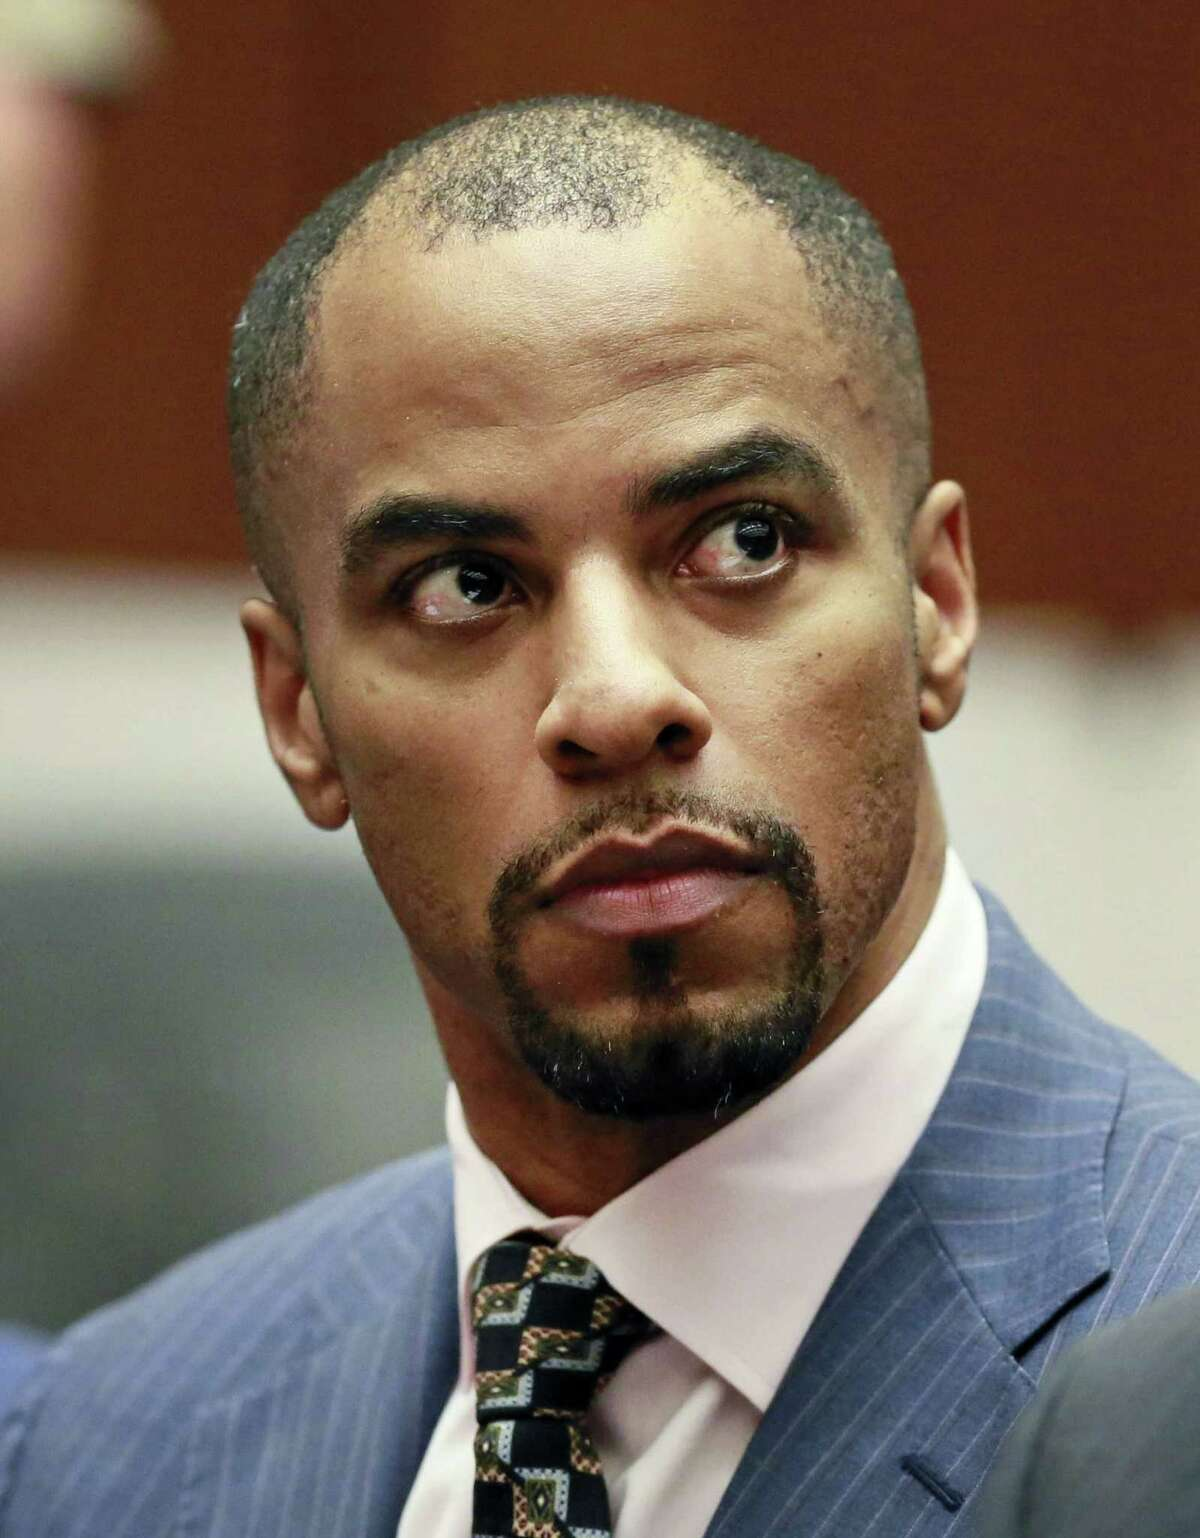 Former NFL player Darren Sharper pleaded guilty to rape Monday in Louisiana state court in New Orleans, completing a series of pleas in four states that will see him serve at least nine years in prison.